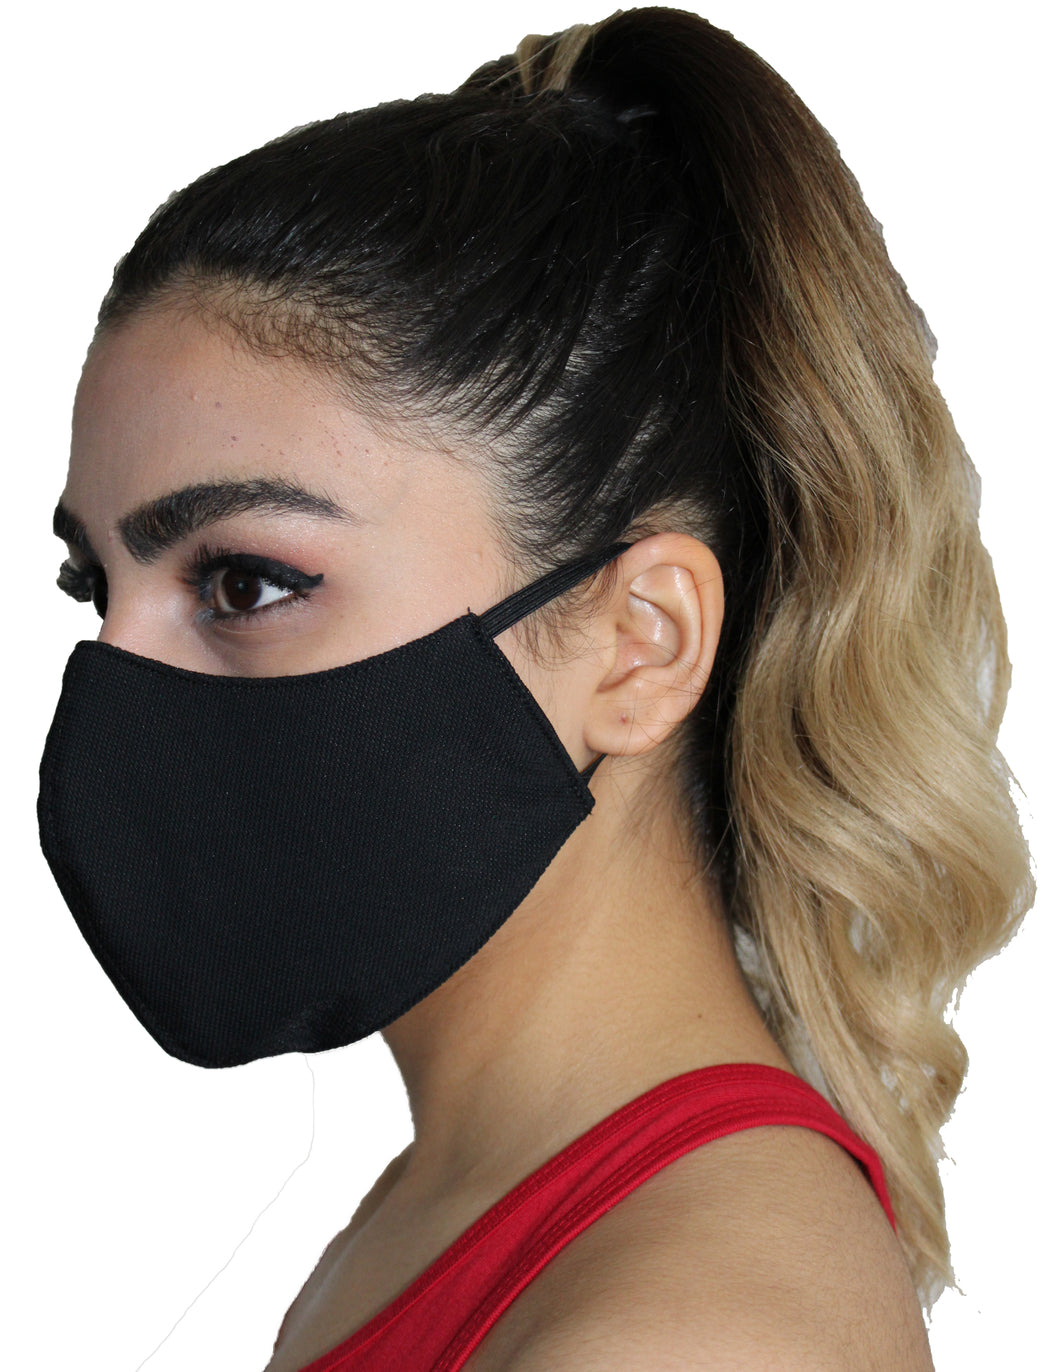 Facemask, comfortable face mask, mask, safety mask, galaxie rouge, red galaxy, black mask